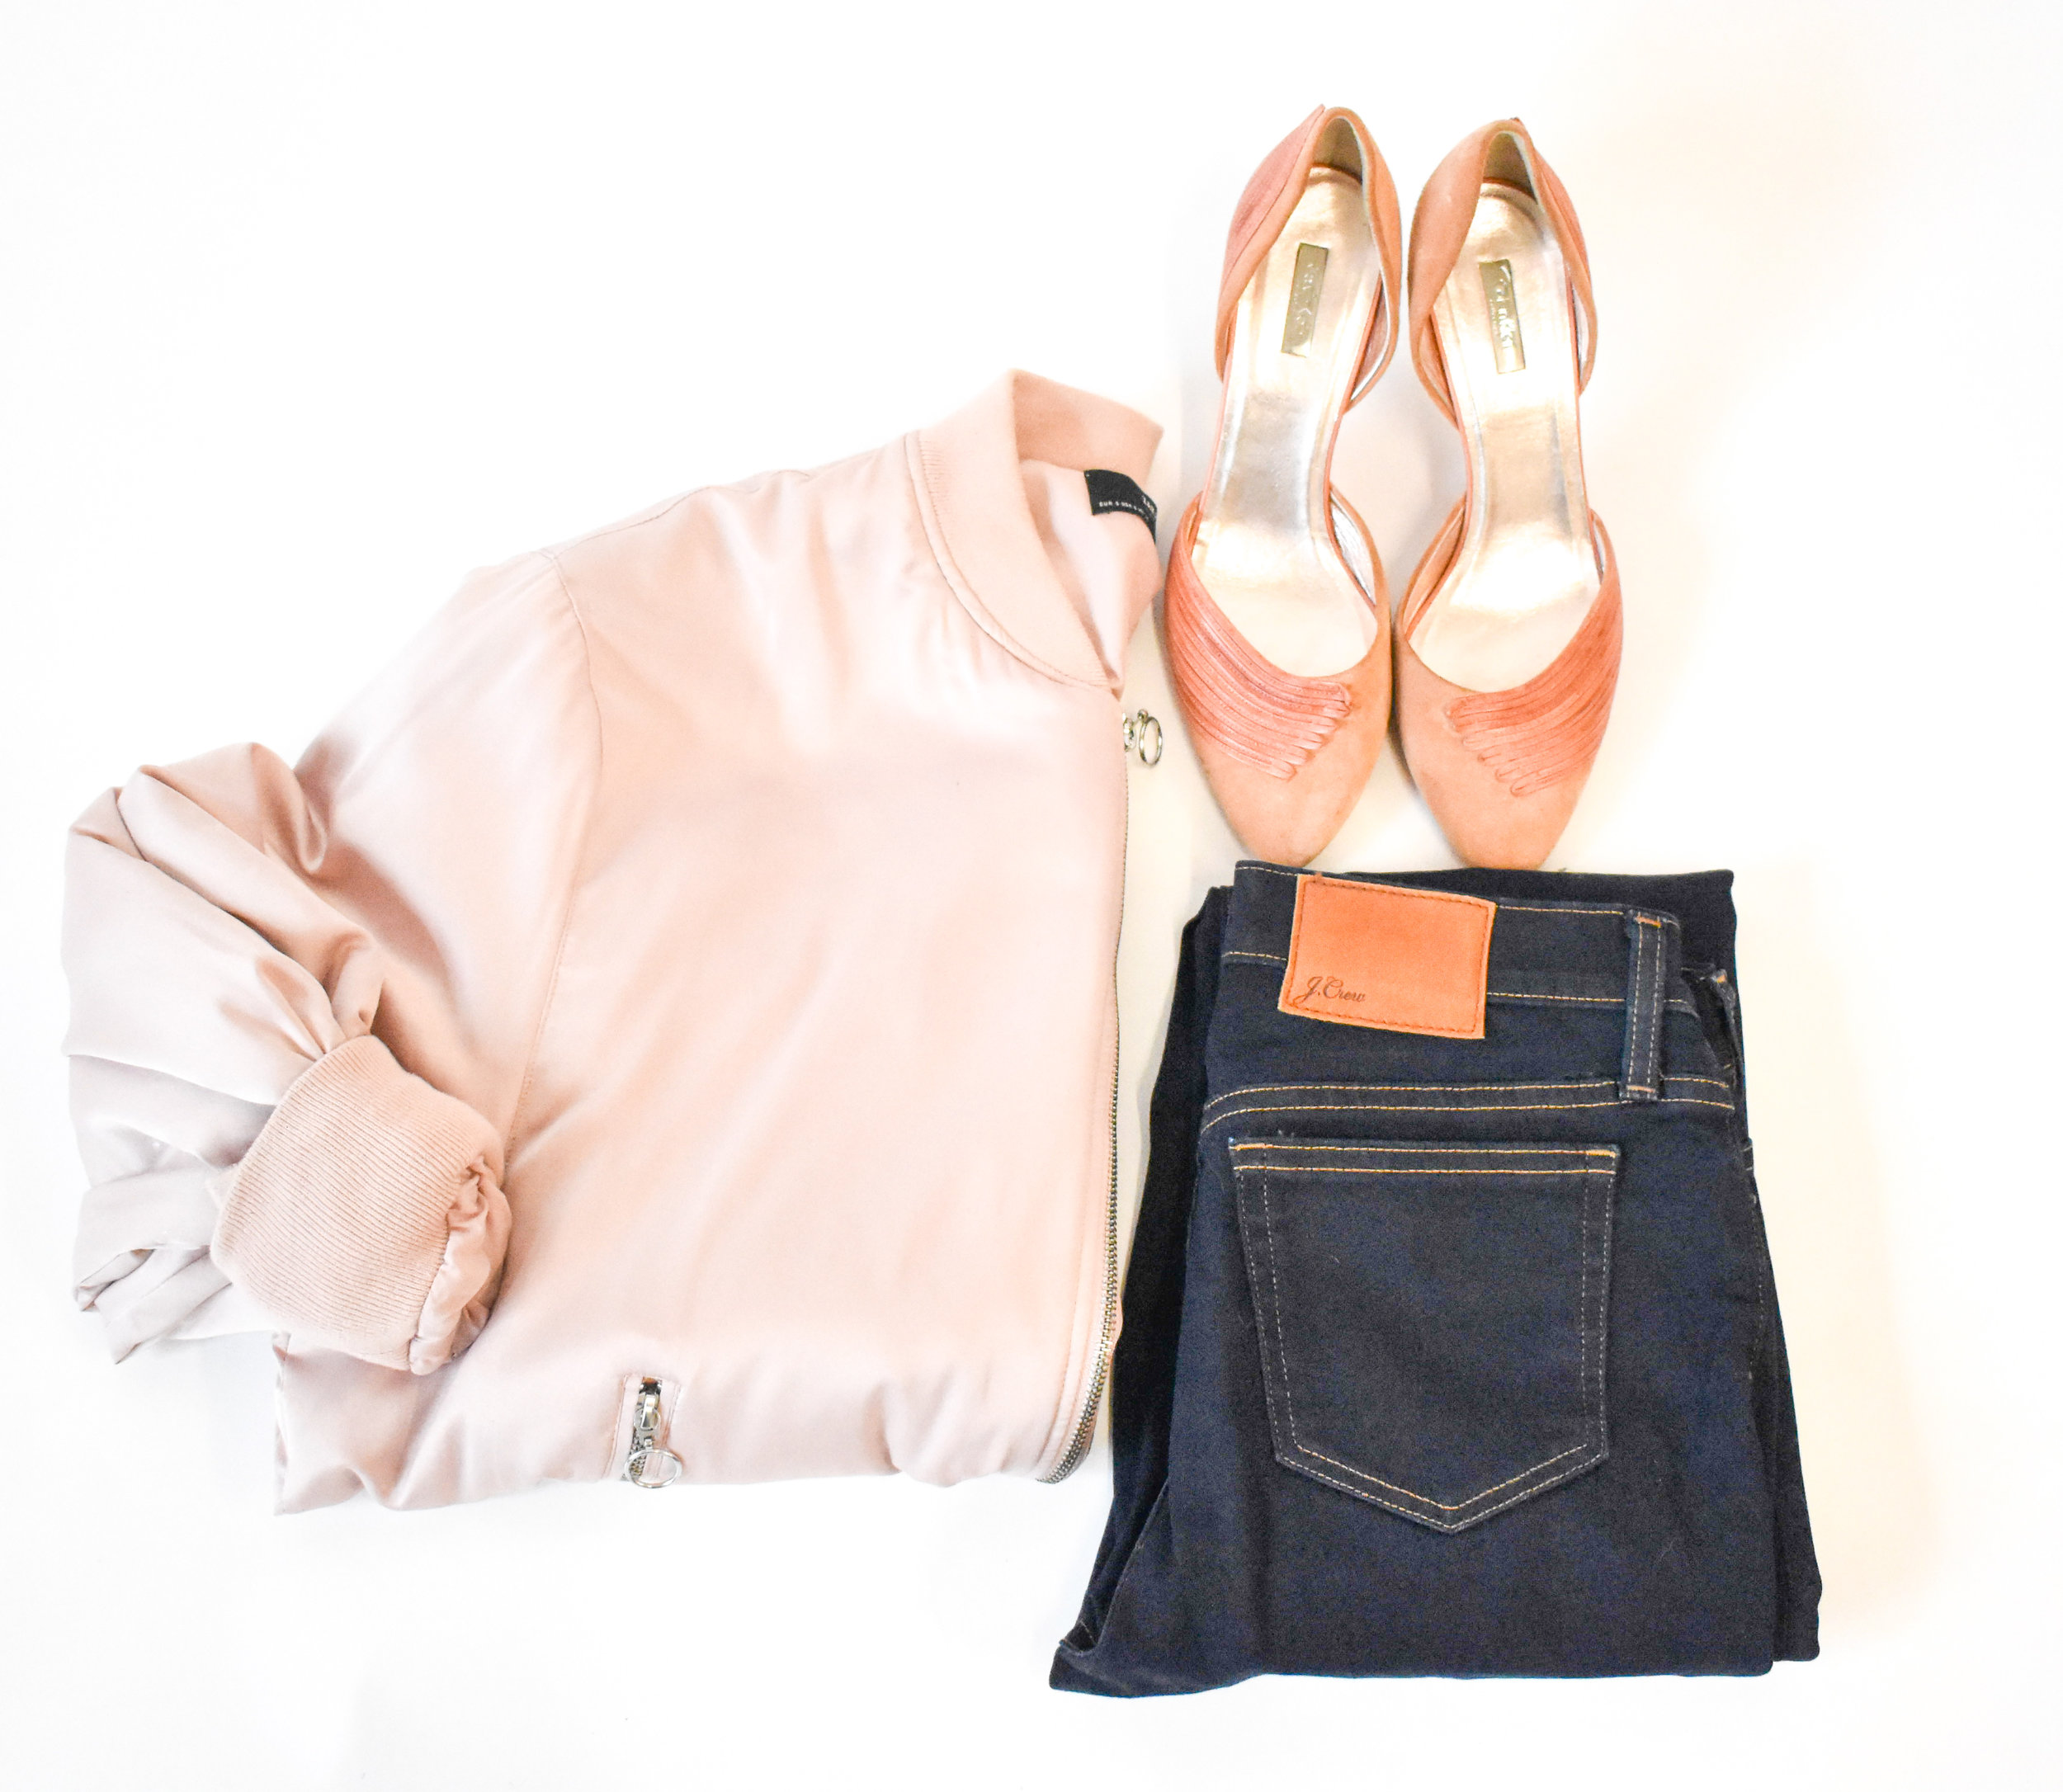 enjoy secondhand clothing in like-new condition, in sizes 00-30. -